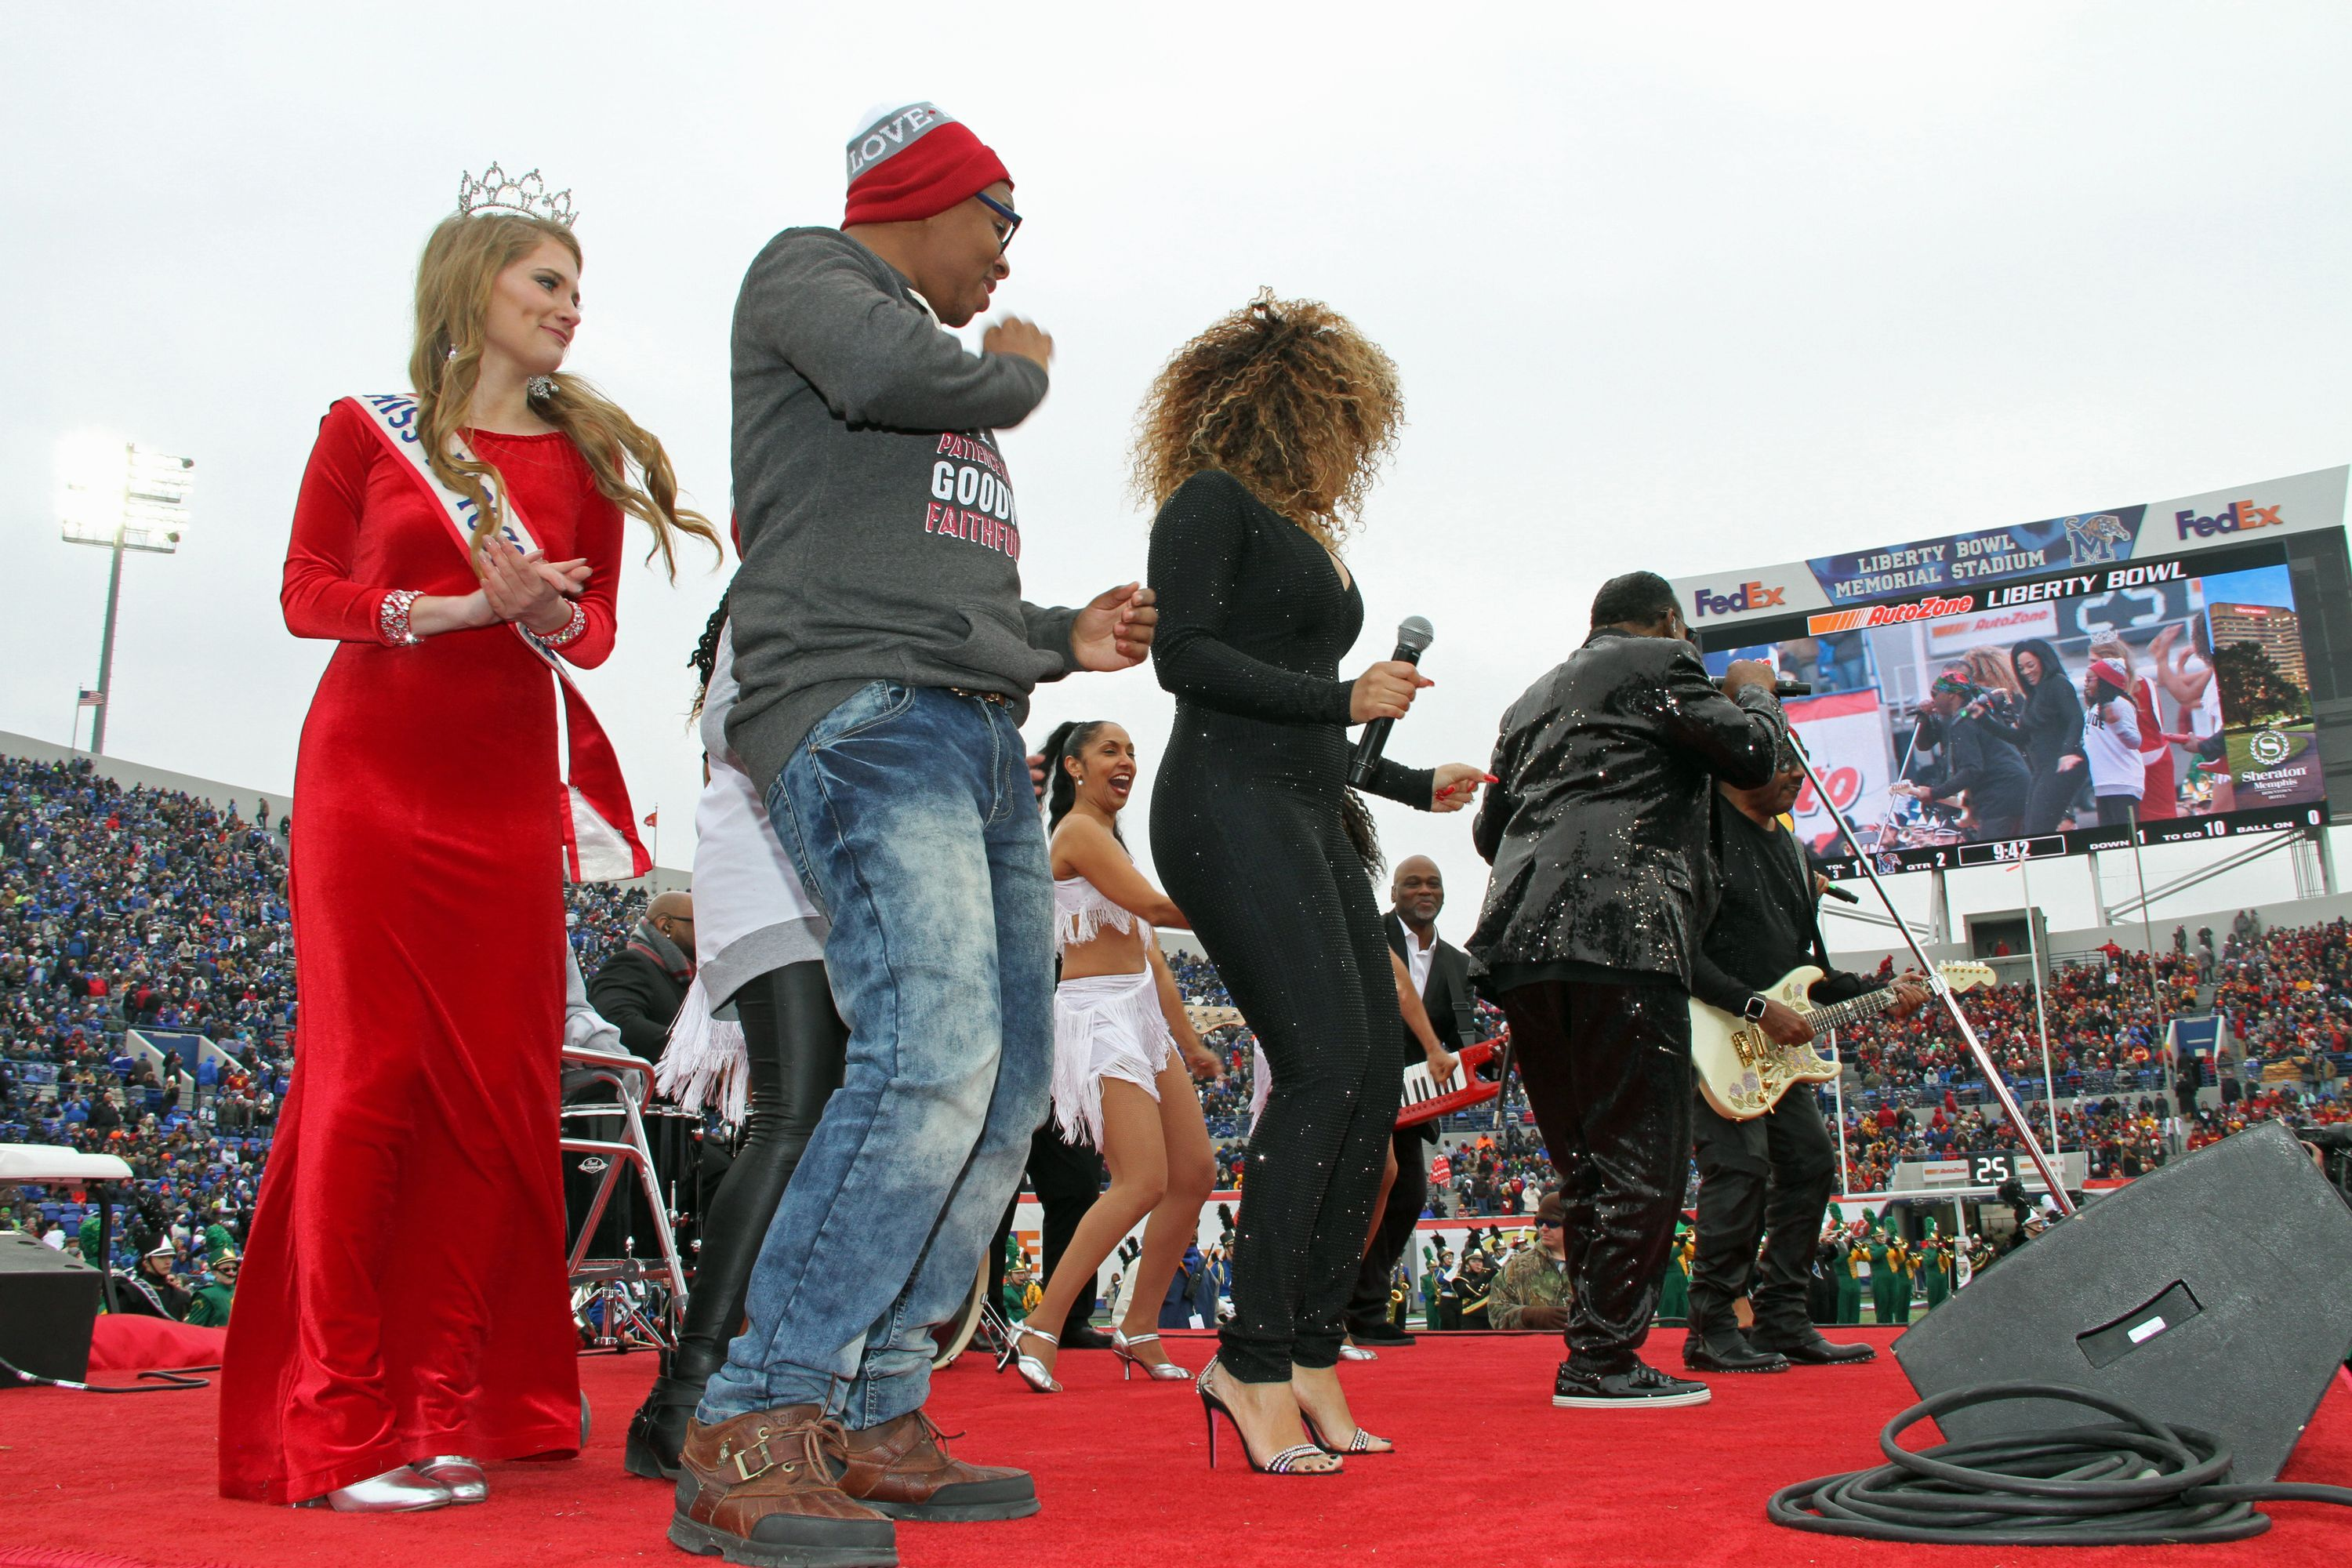 News and Events - America's Homecoming Queen